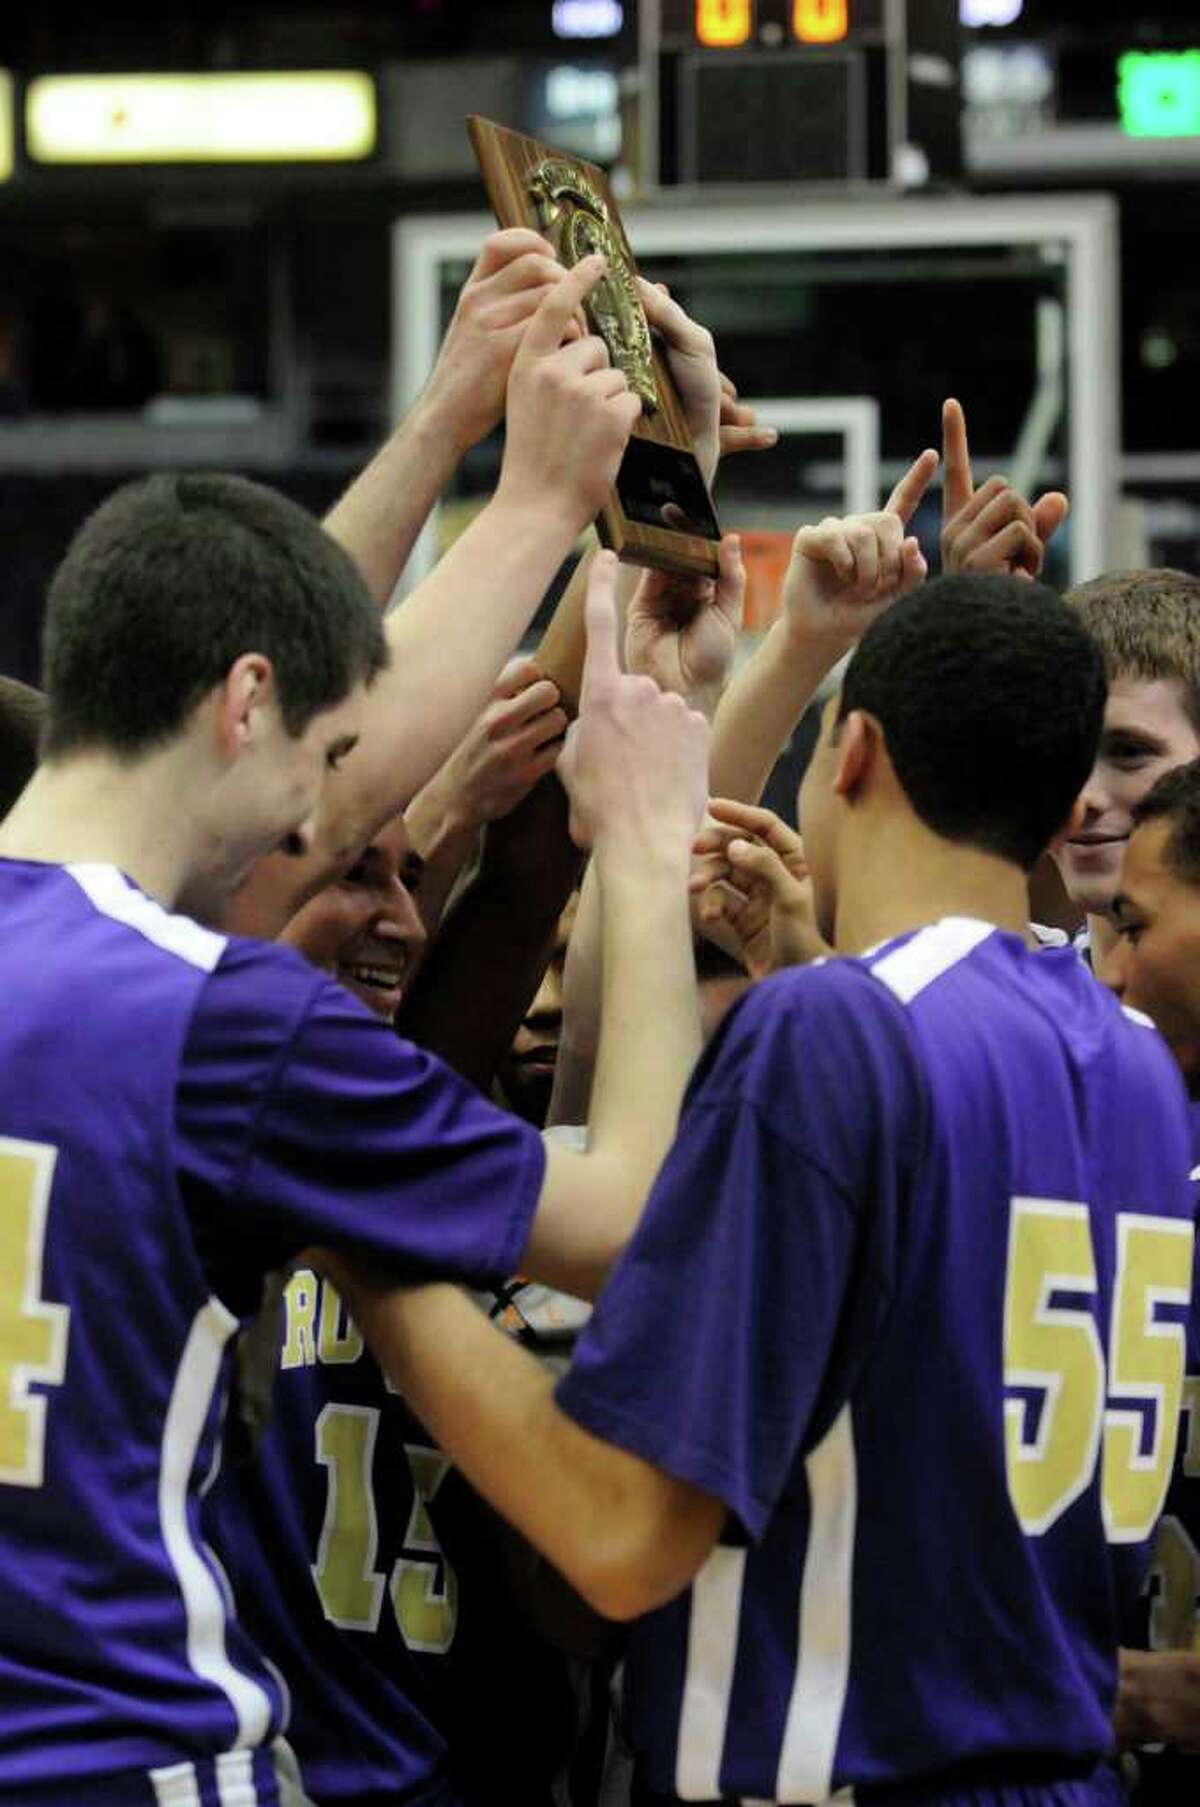 CBA boys varsity basketball team players hold up the championship trophy following their Section 2 Class AA boys basketball finals win 69-46 over Bishop Maginn at the Times Union Center in Albany Tuesday March 8, 2011.( Michael P. Farrell/Times Union )